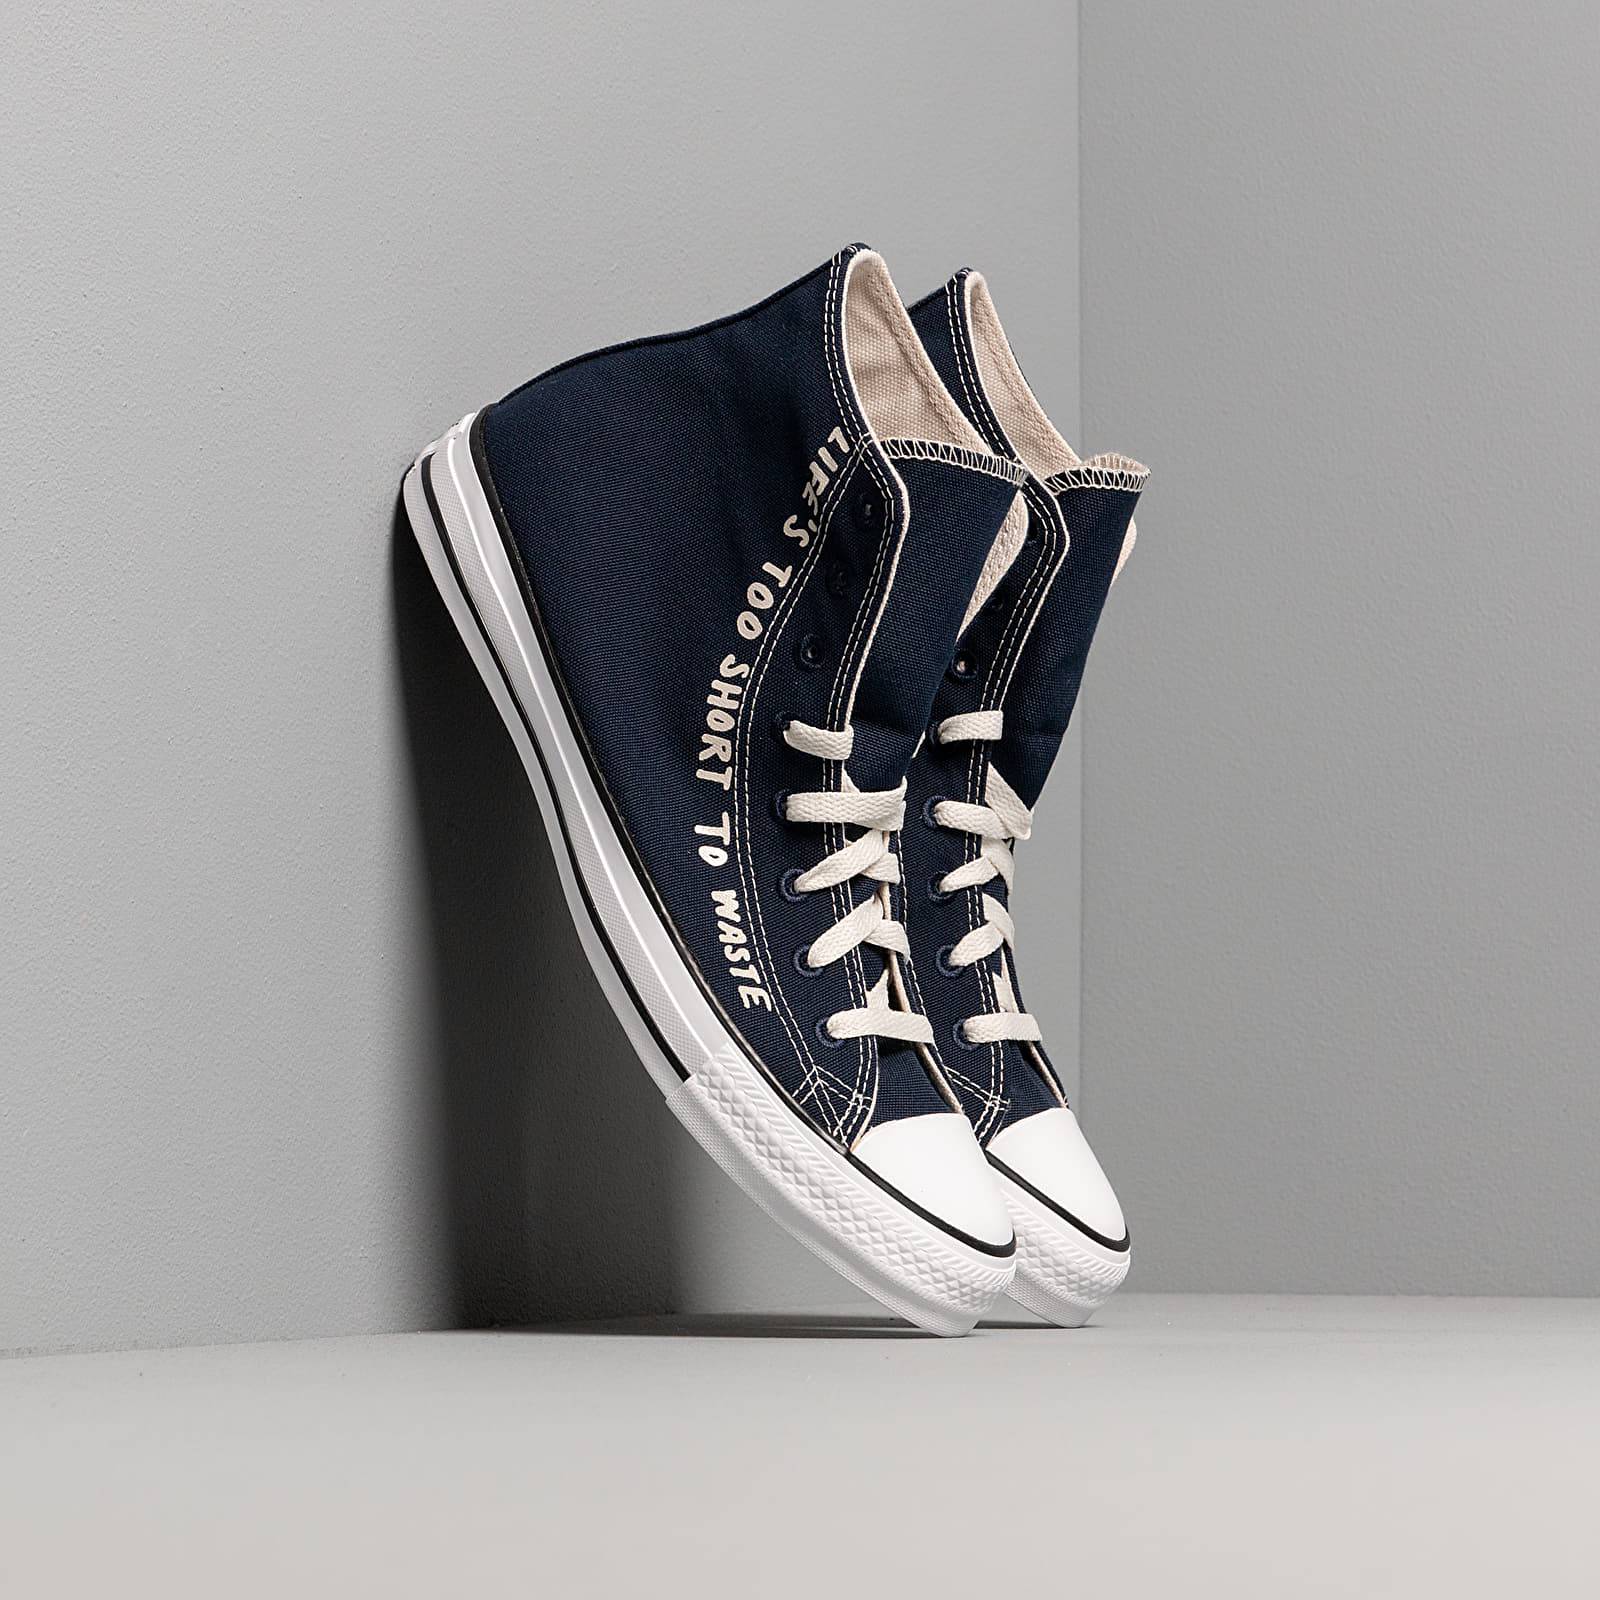 Men's shoes Converse Chuck Taylor All Star Hi Renew Obsidian/ Egret/ White